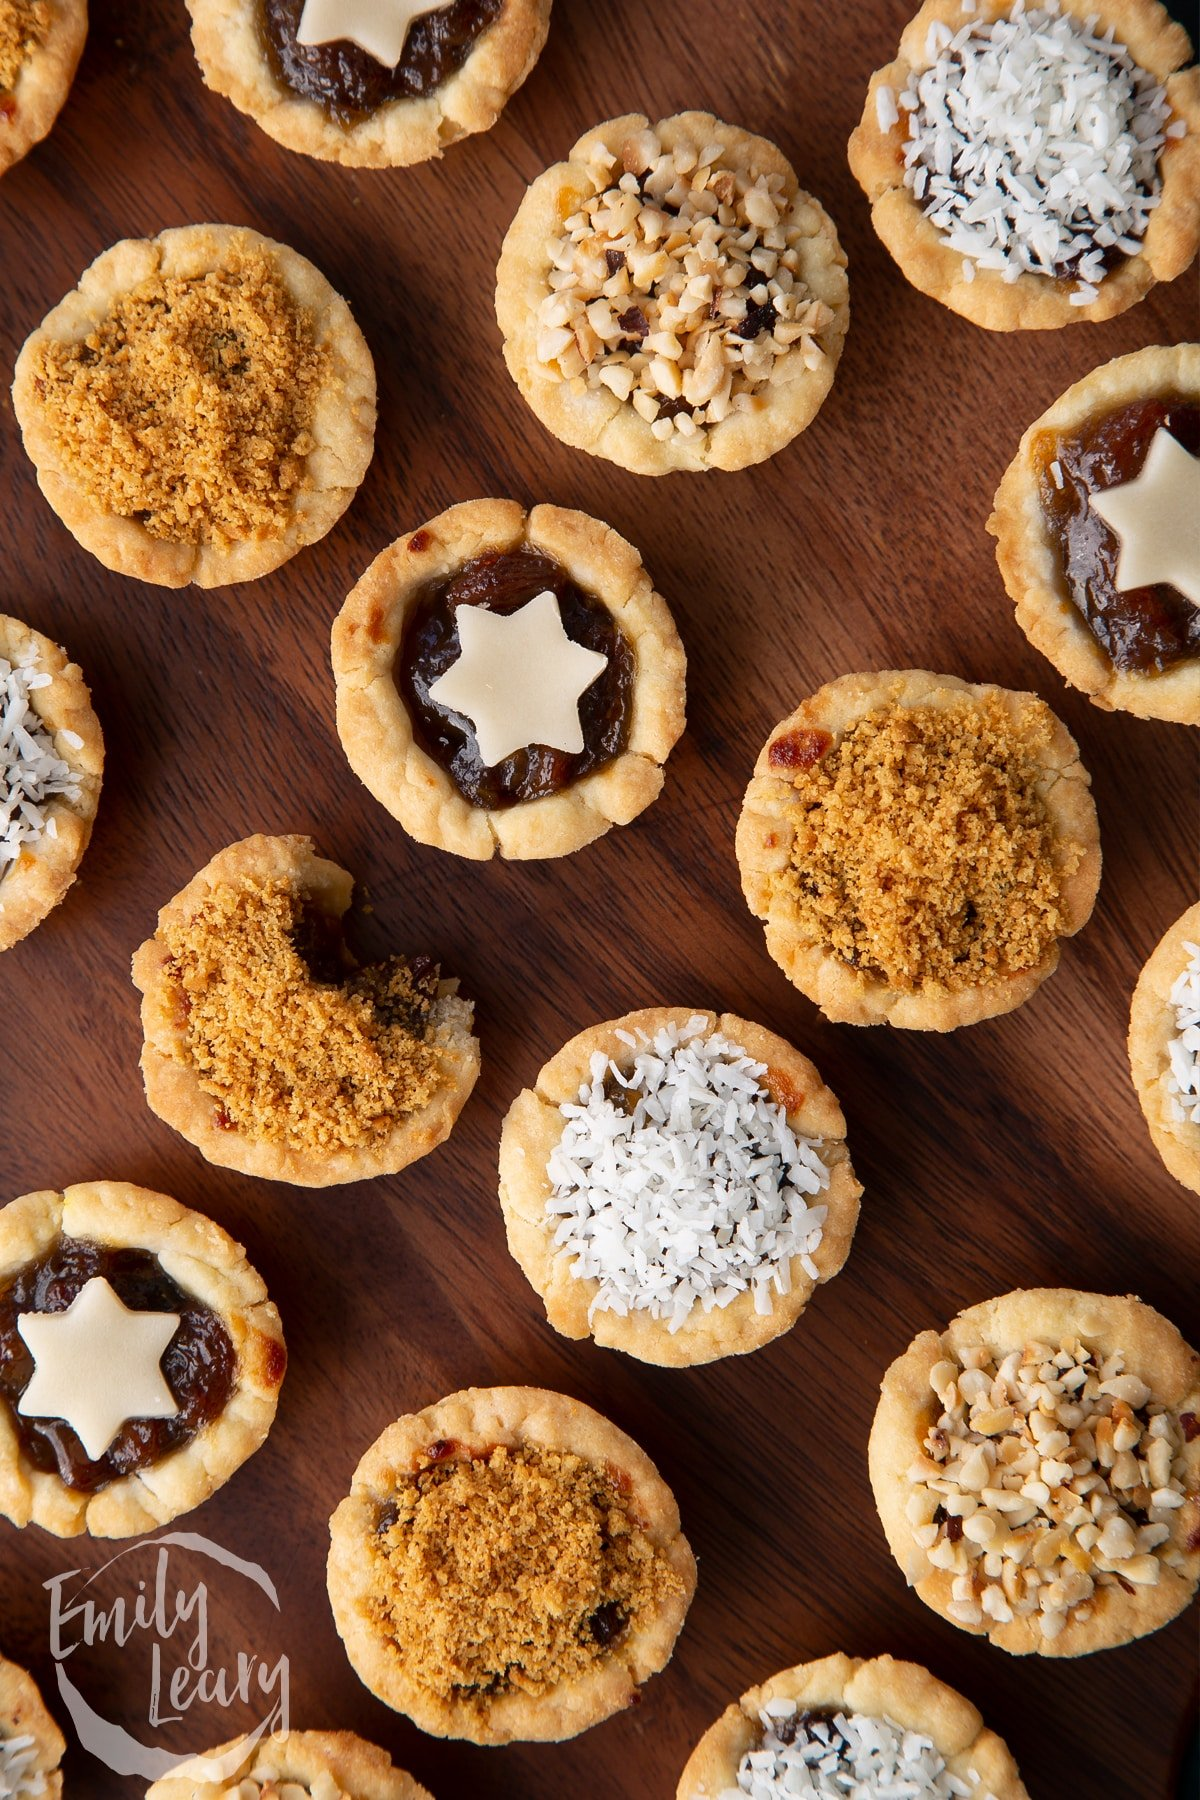 Close up on mini mince pies, shown from above on a dark wooden board. One has a bite out of it.